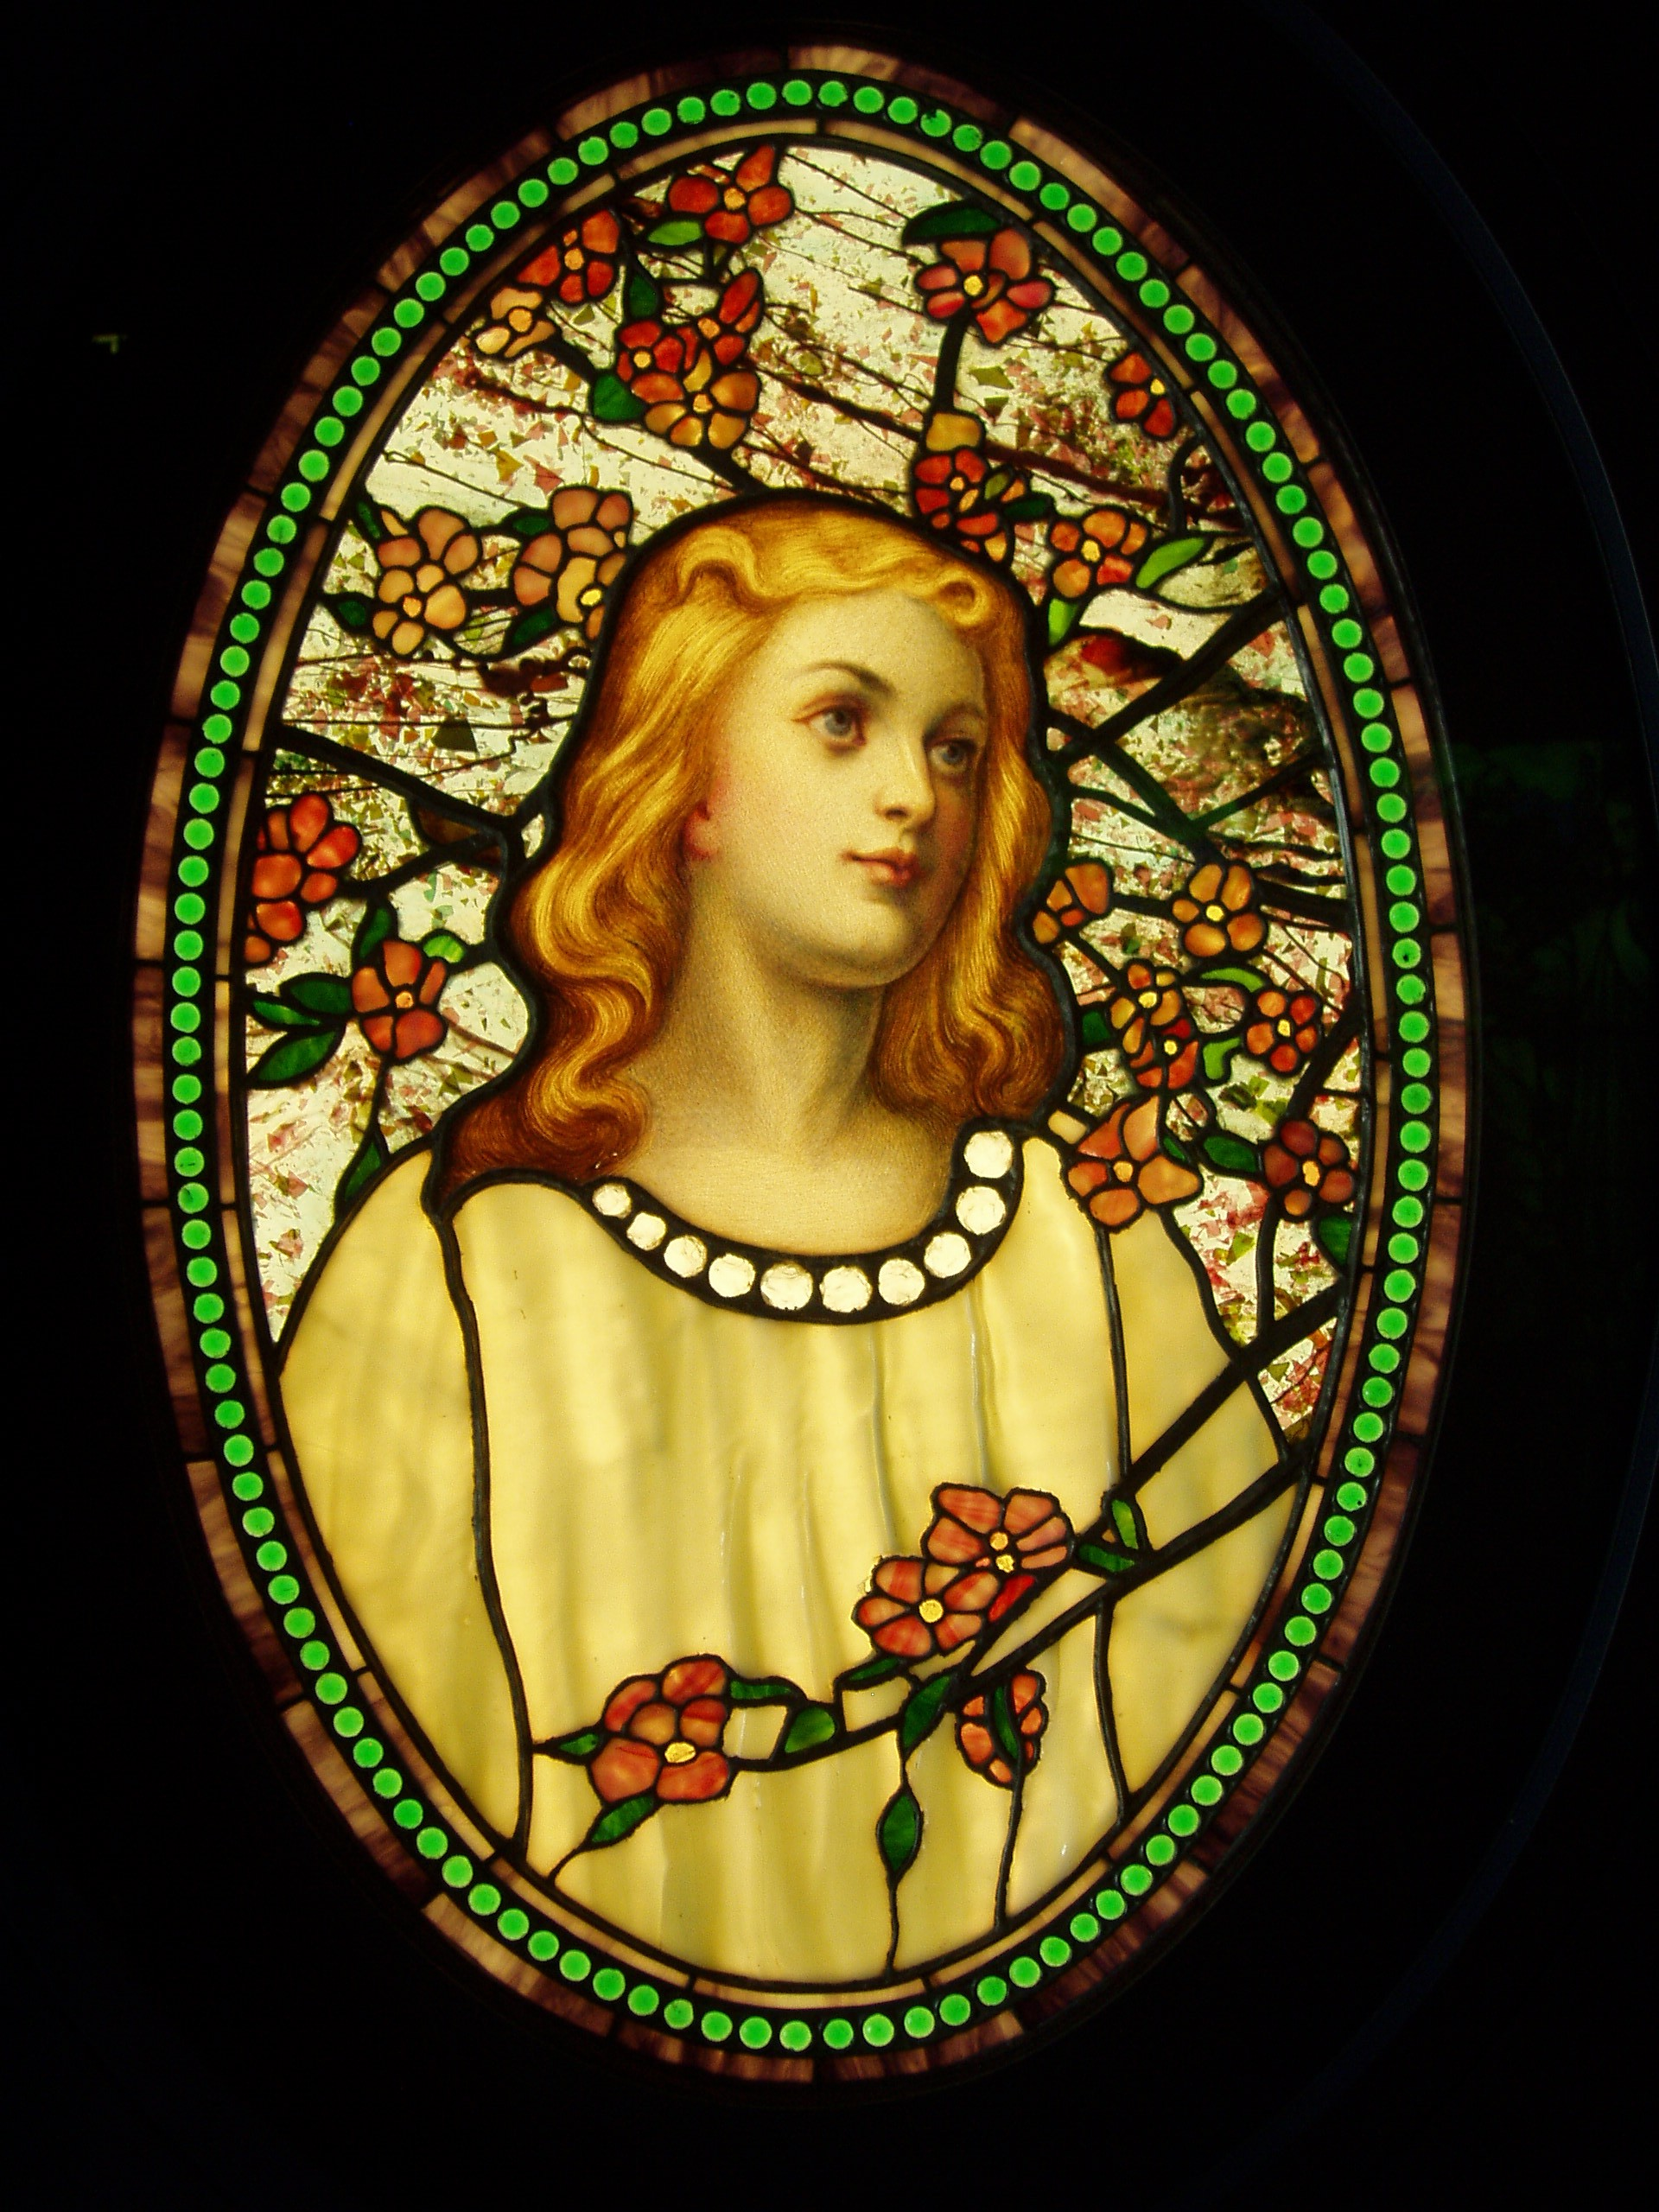 Girl_with_Cherry_Blossoms_-_Tiffany_Glass_&_Decorating_Company,_c._1890